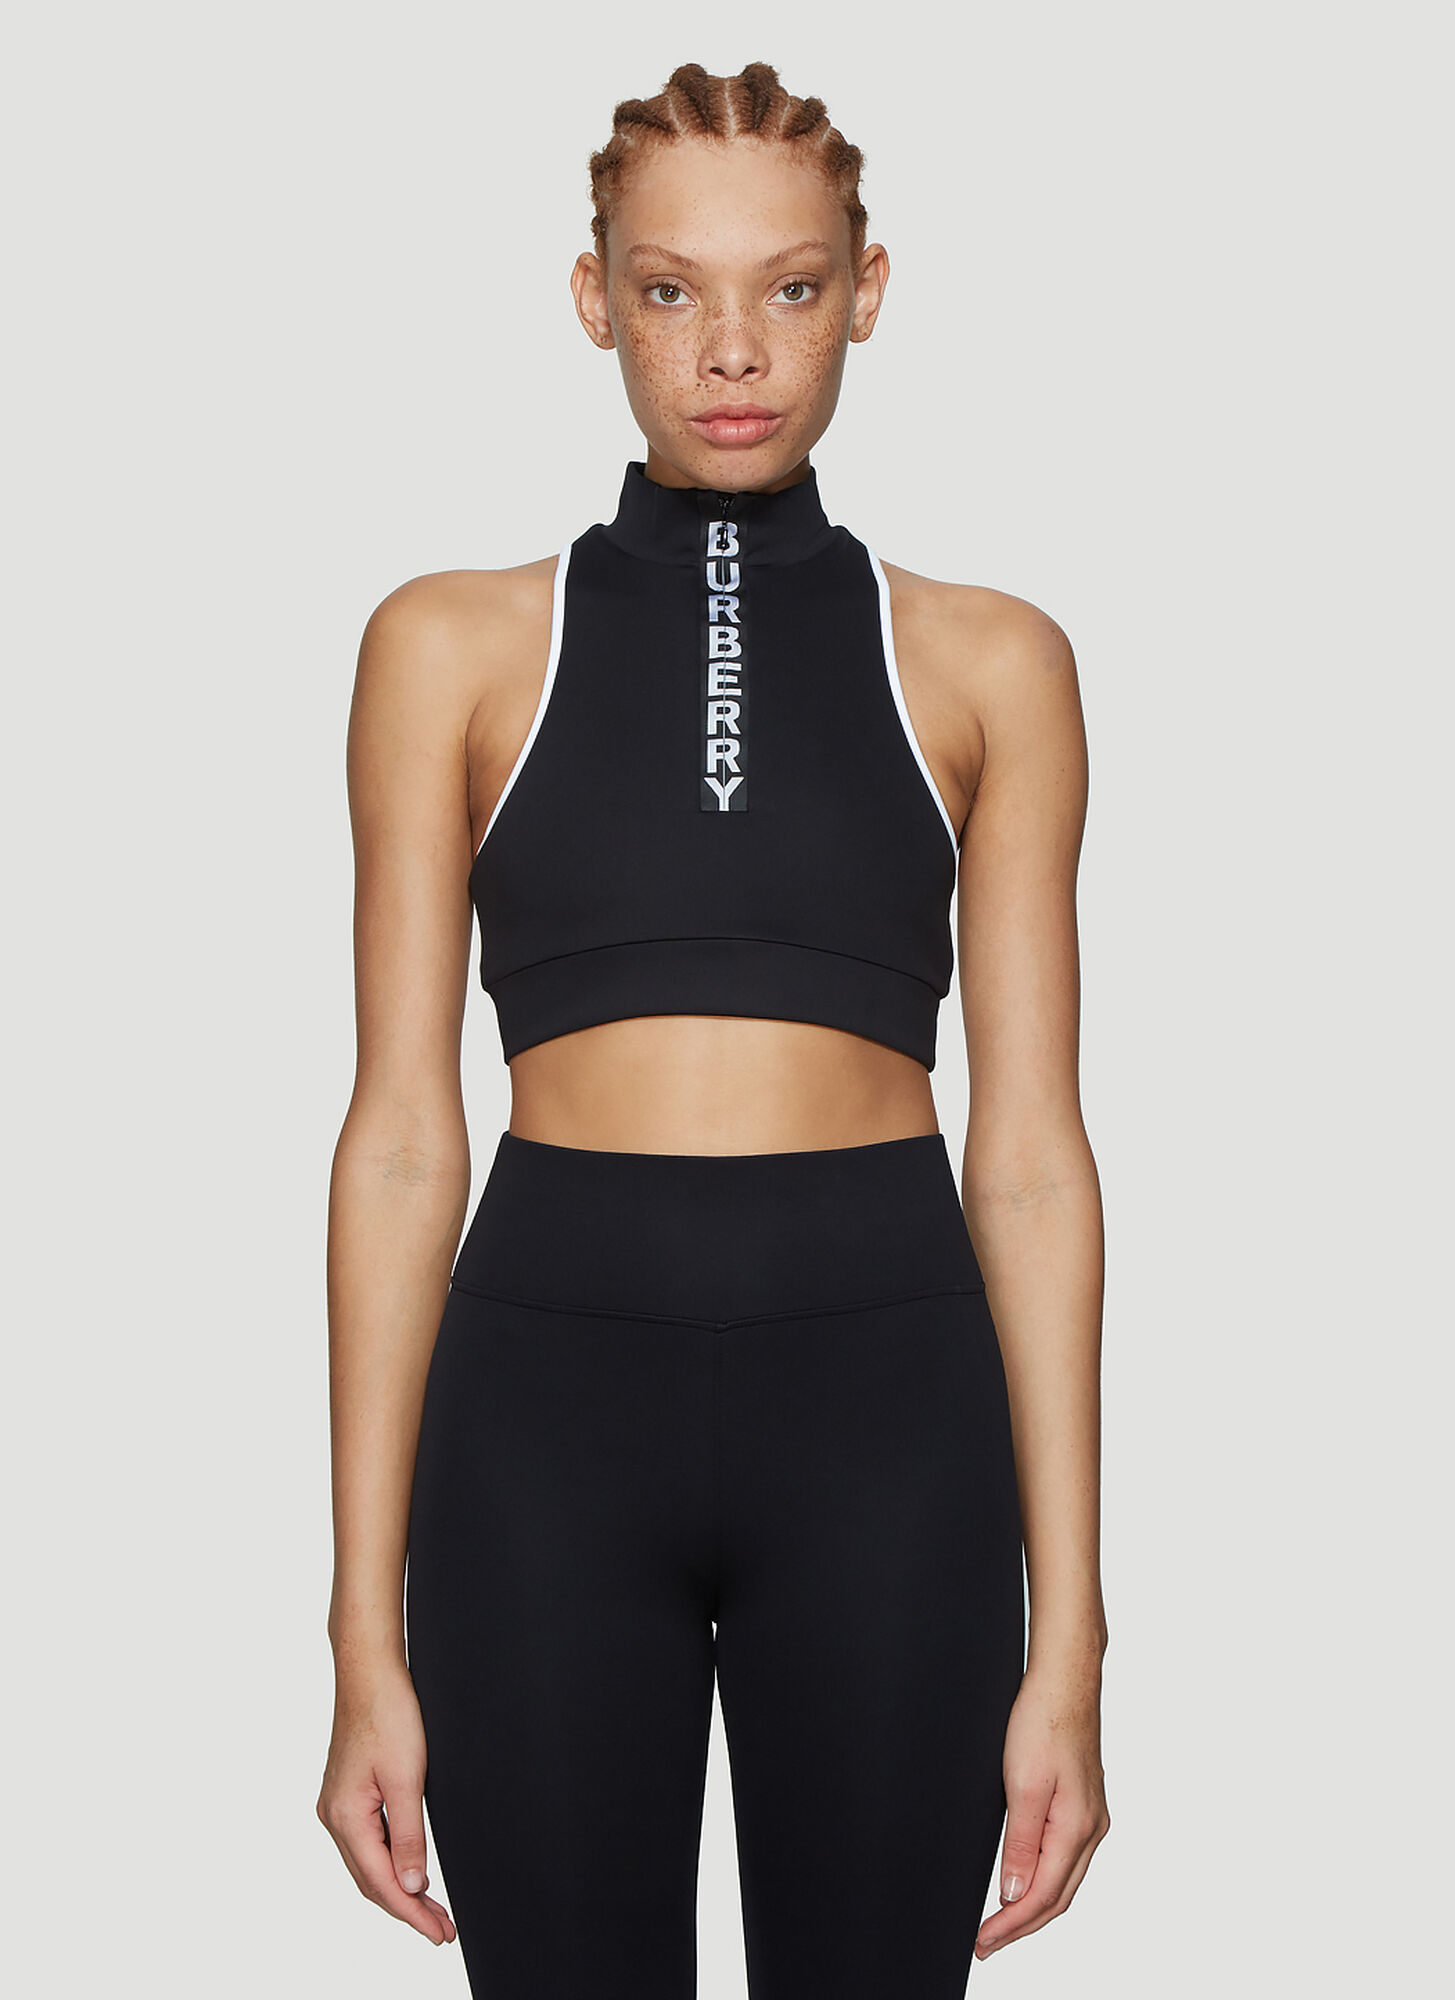 Burberry Cropped Sleeveless Top in Black